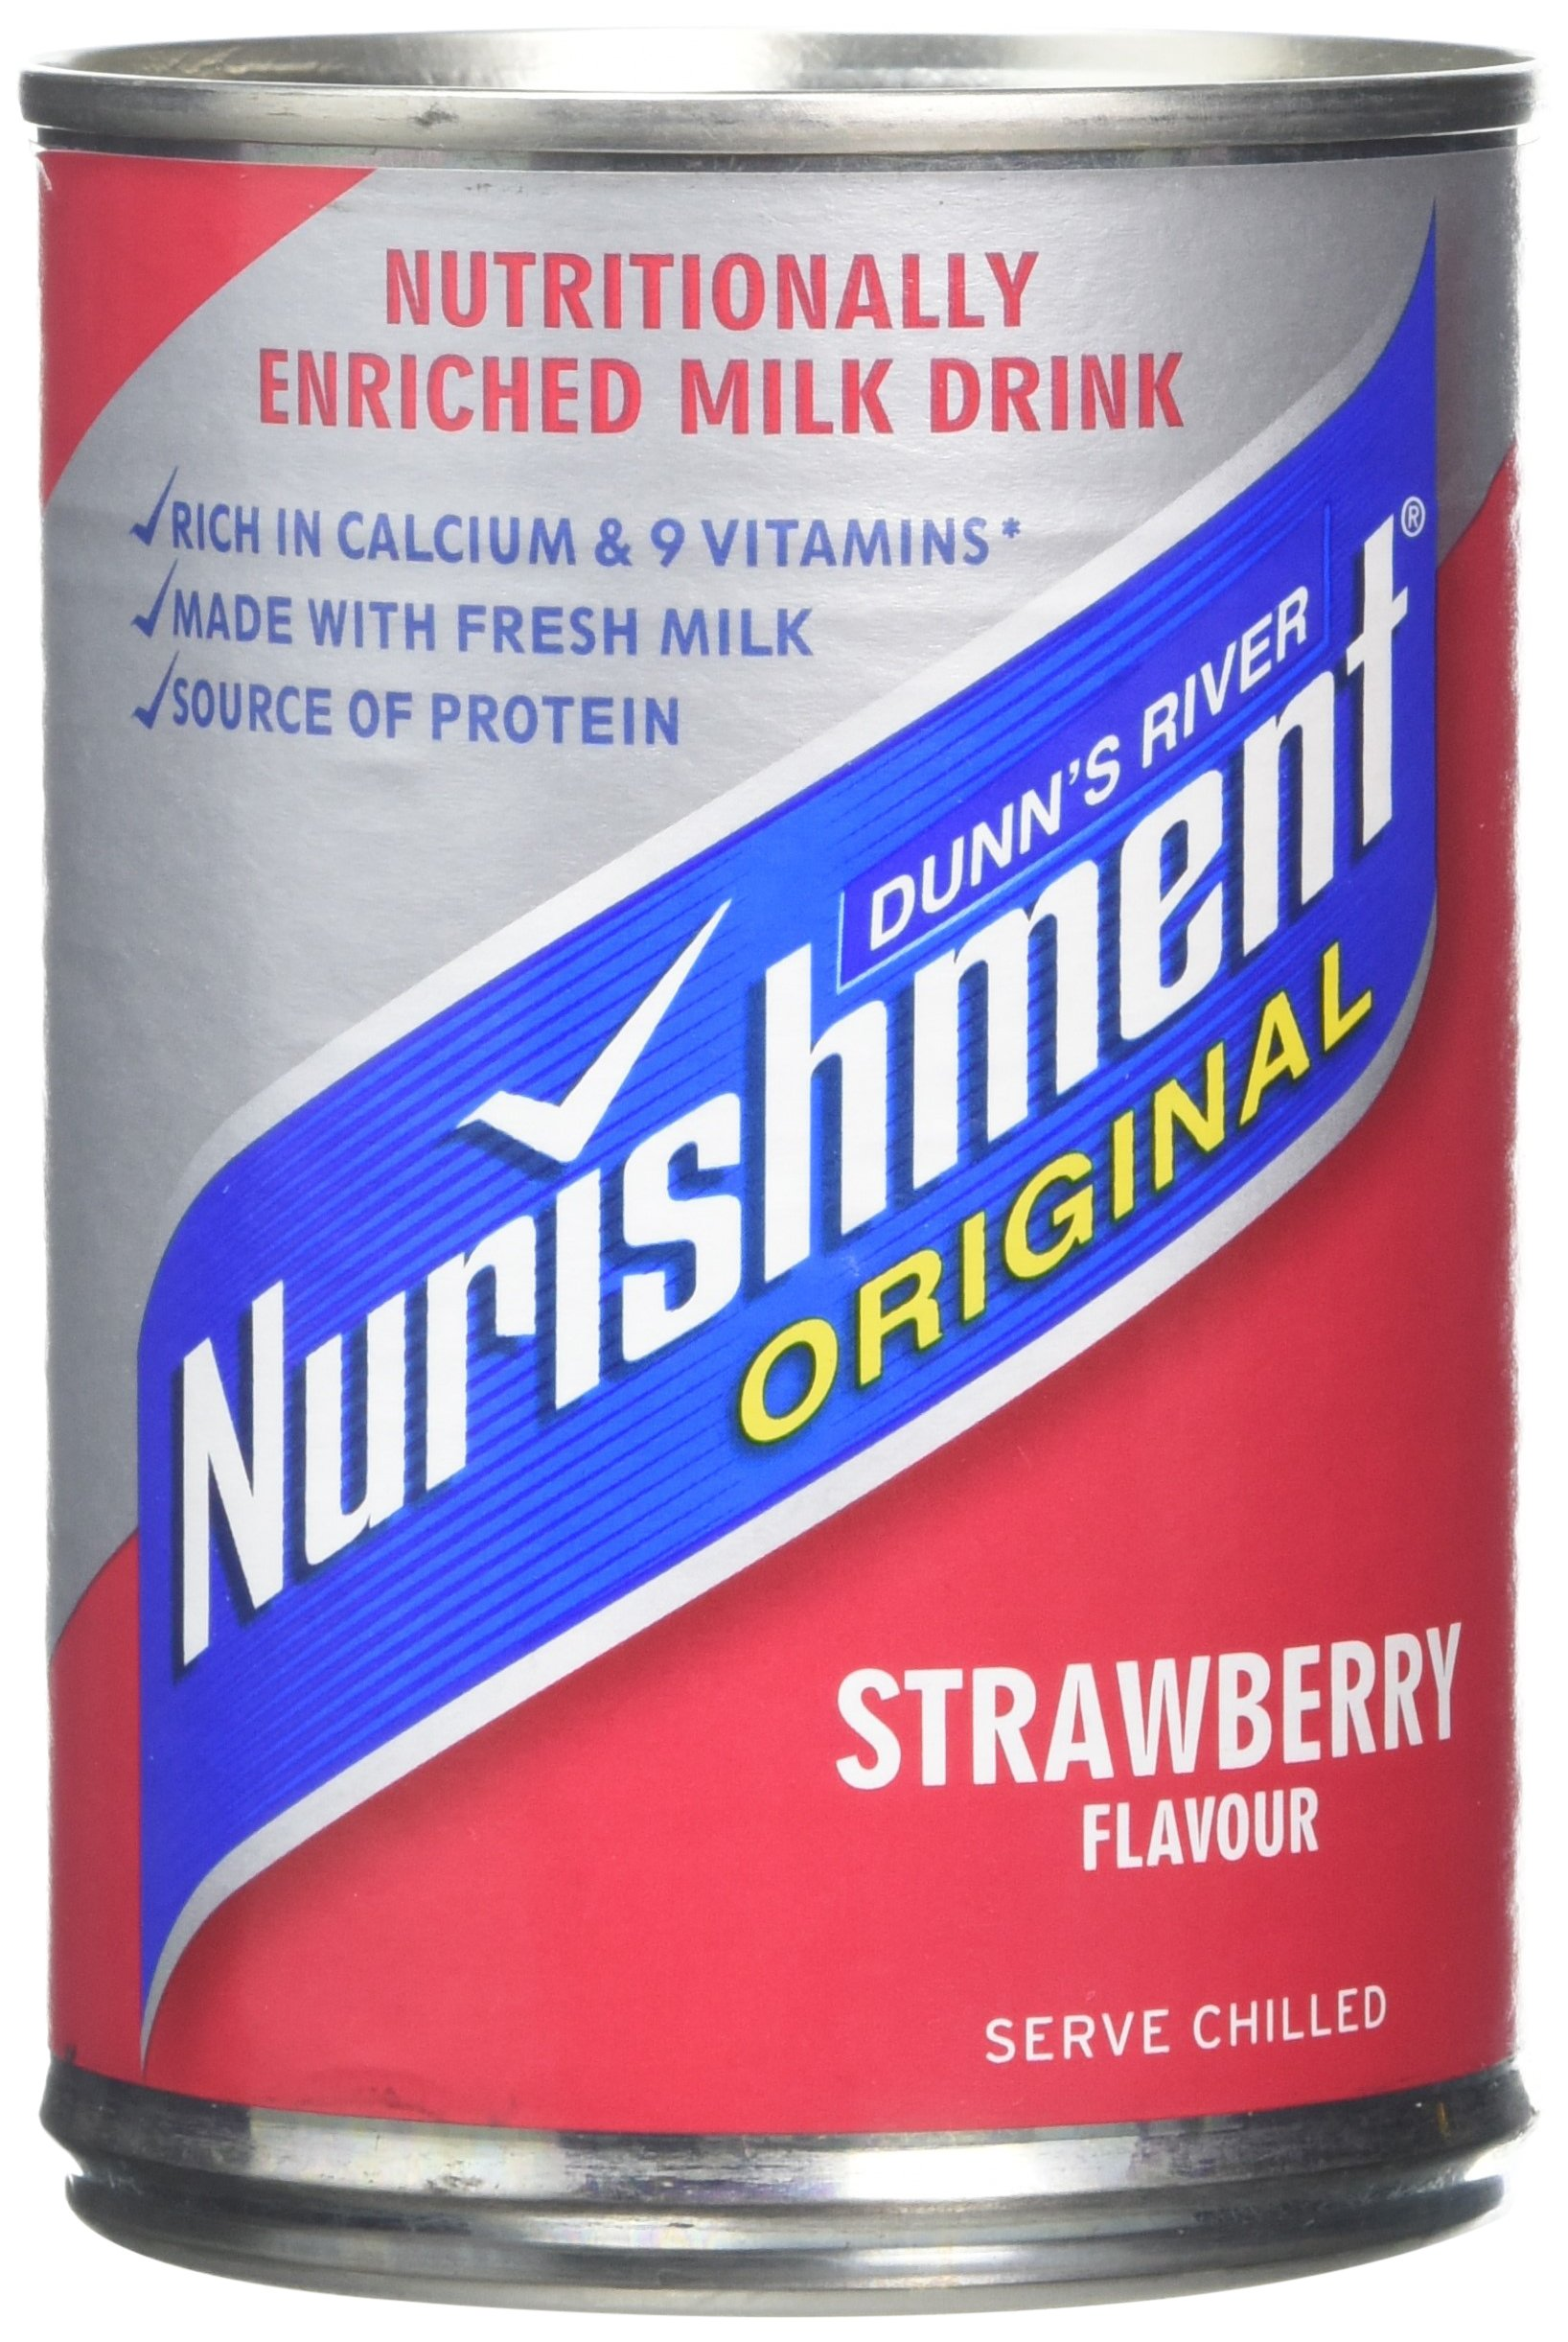 Dunns River Nurishment Original Strawberry 14oz (Pack of 12) by Nurishment